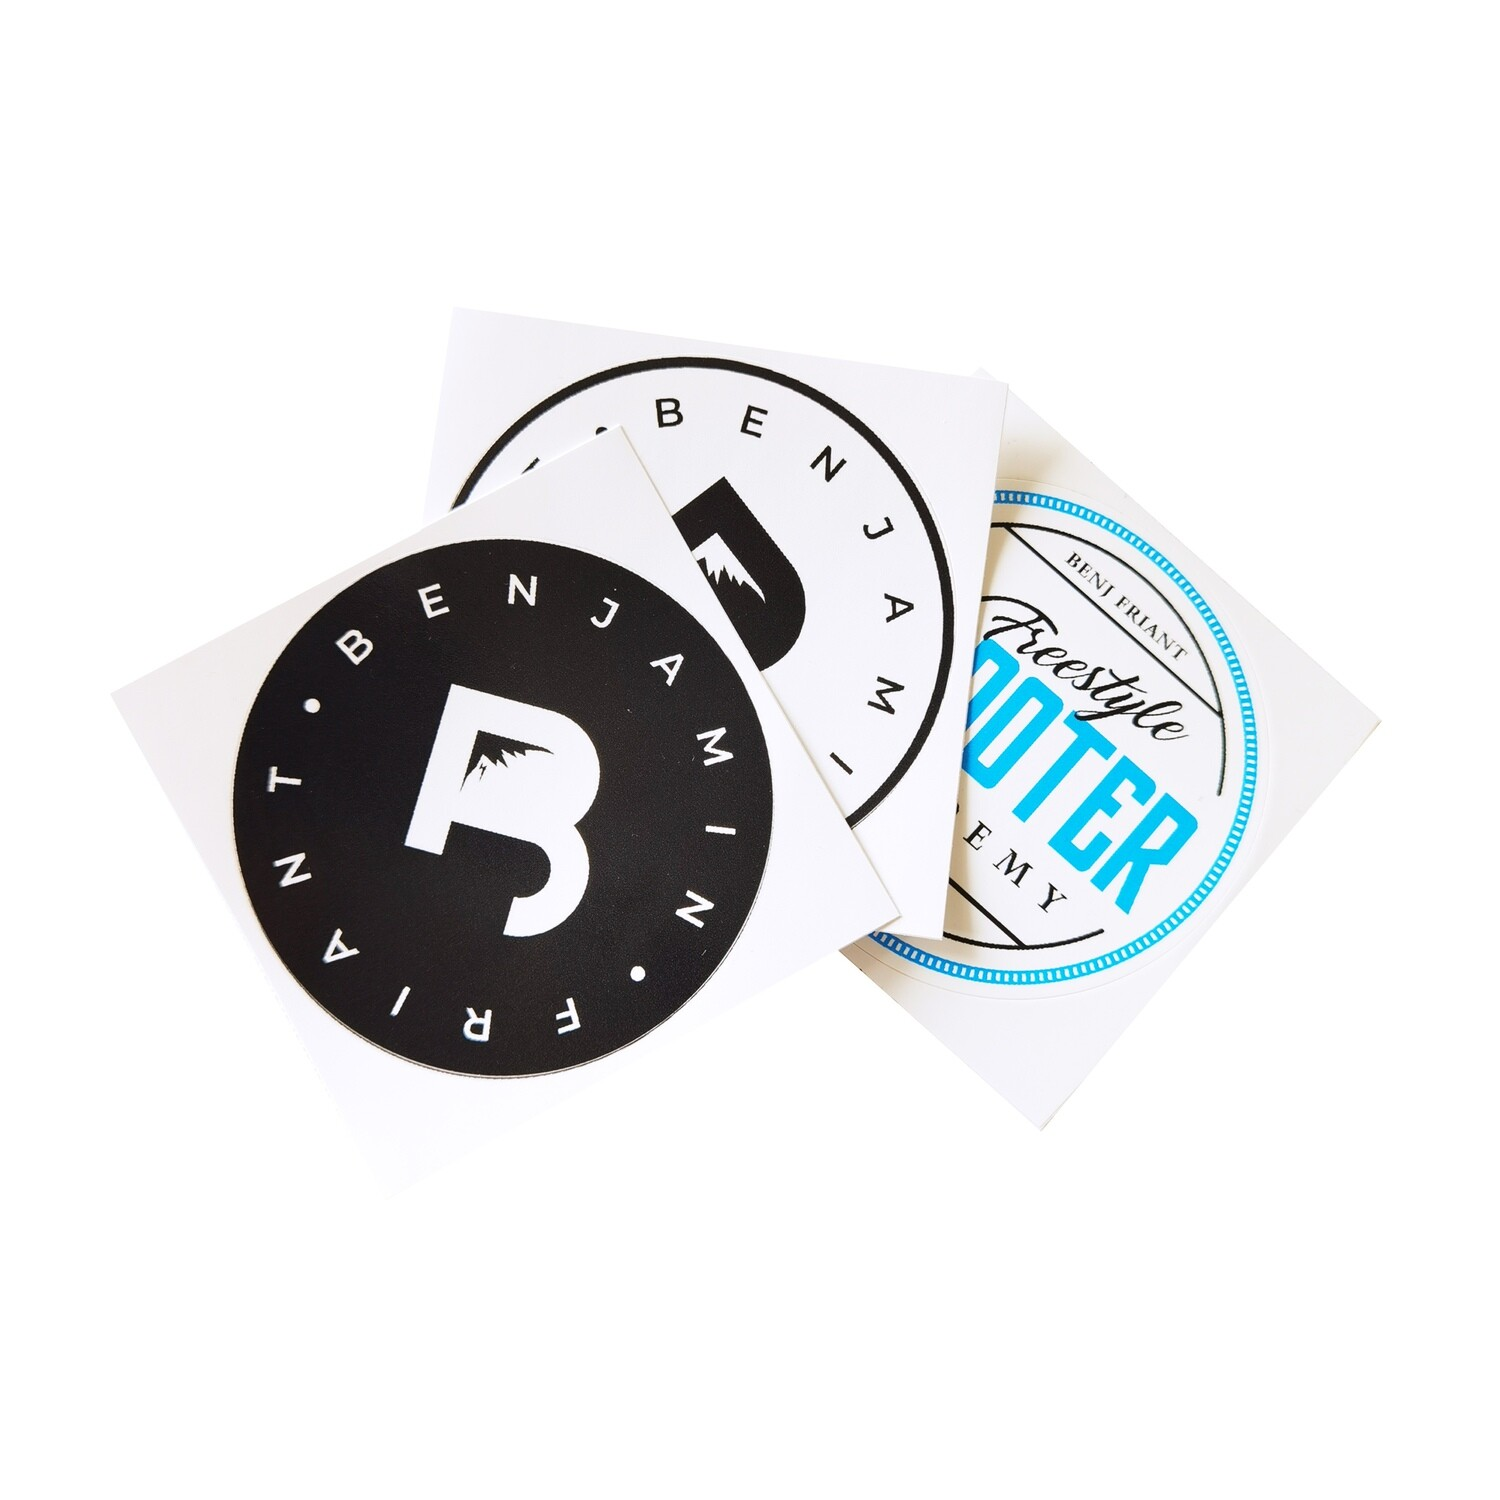 Lot 3 stickers BenJ Friant + Freestyle Scooter Academy